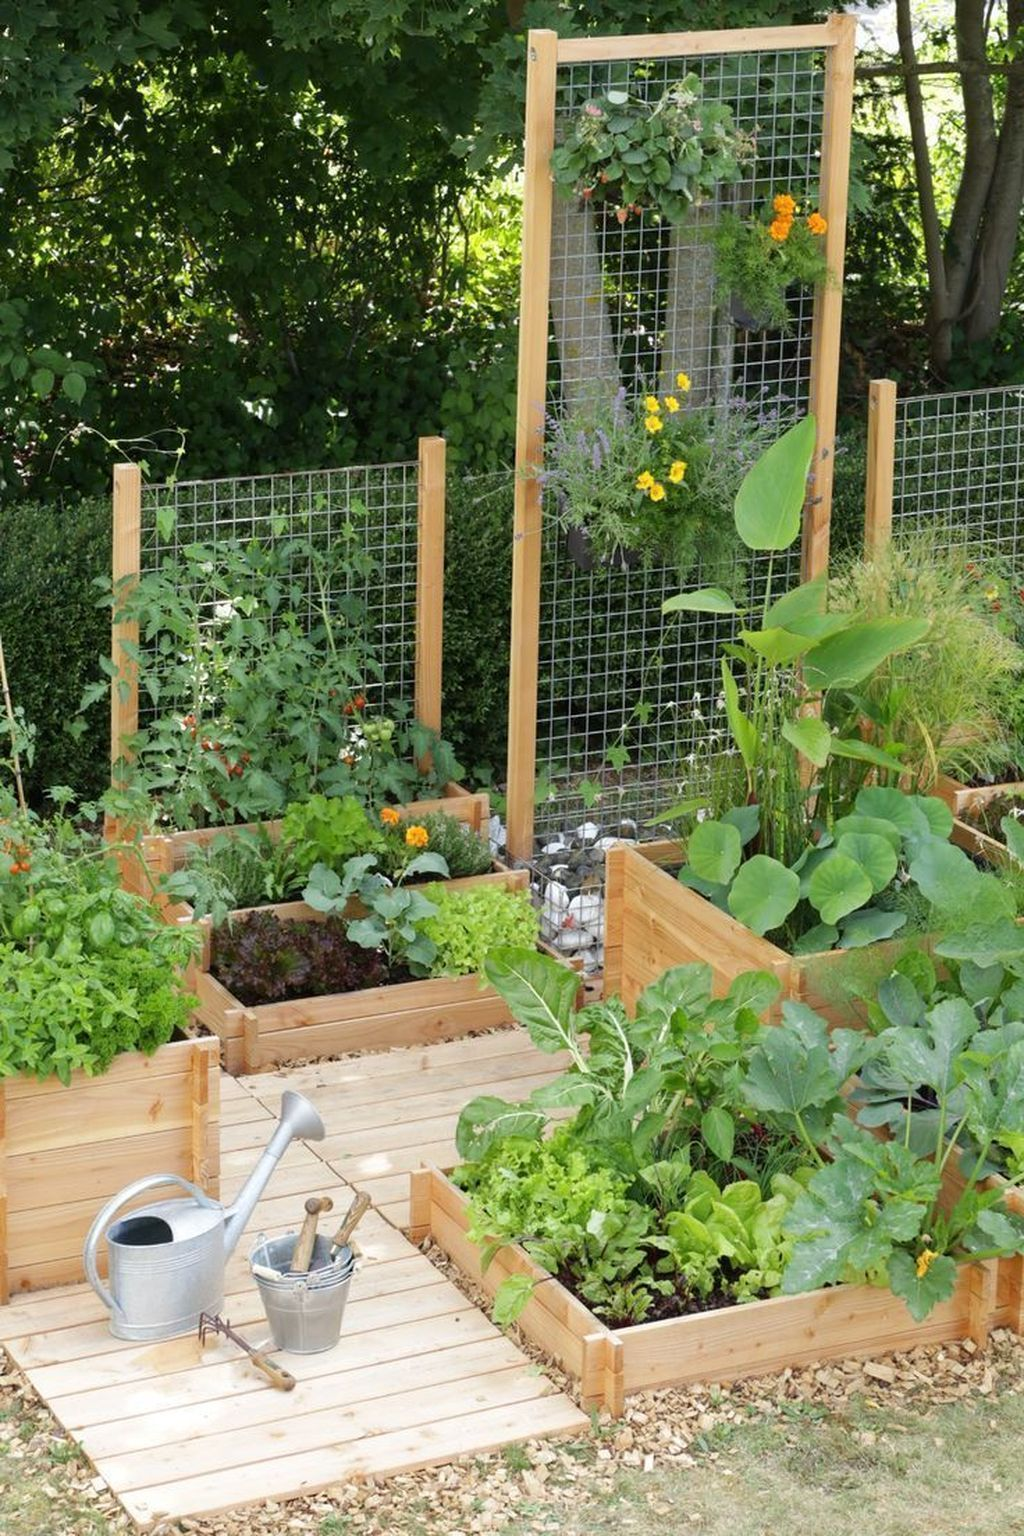 Easy Clever Gardening Ideas And Plant for Small Space On ...